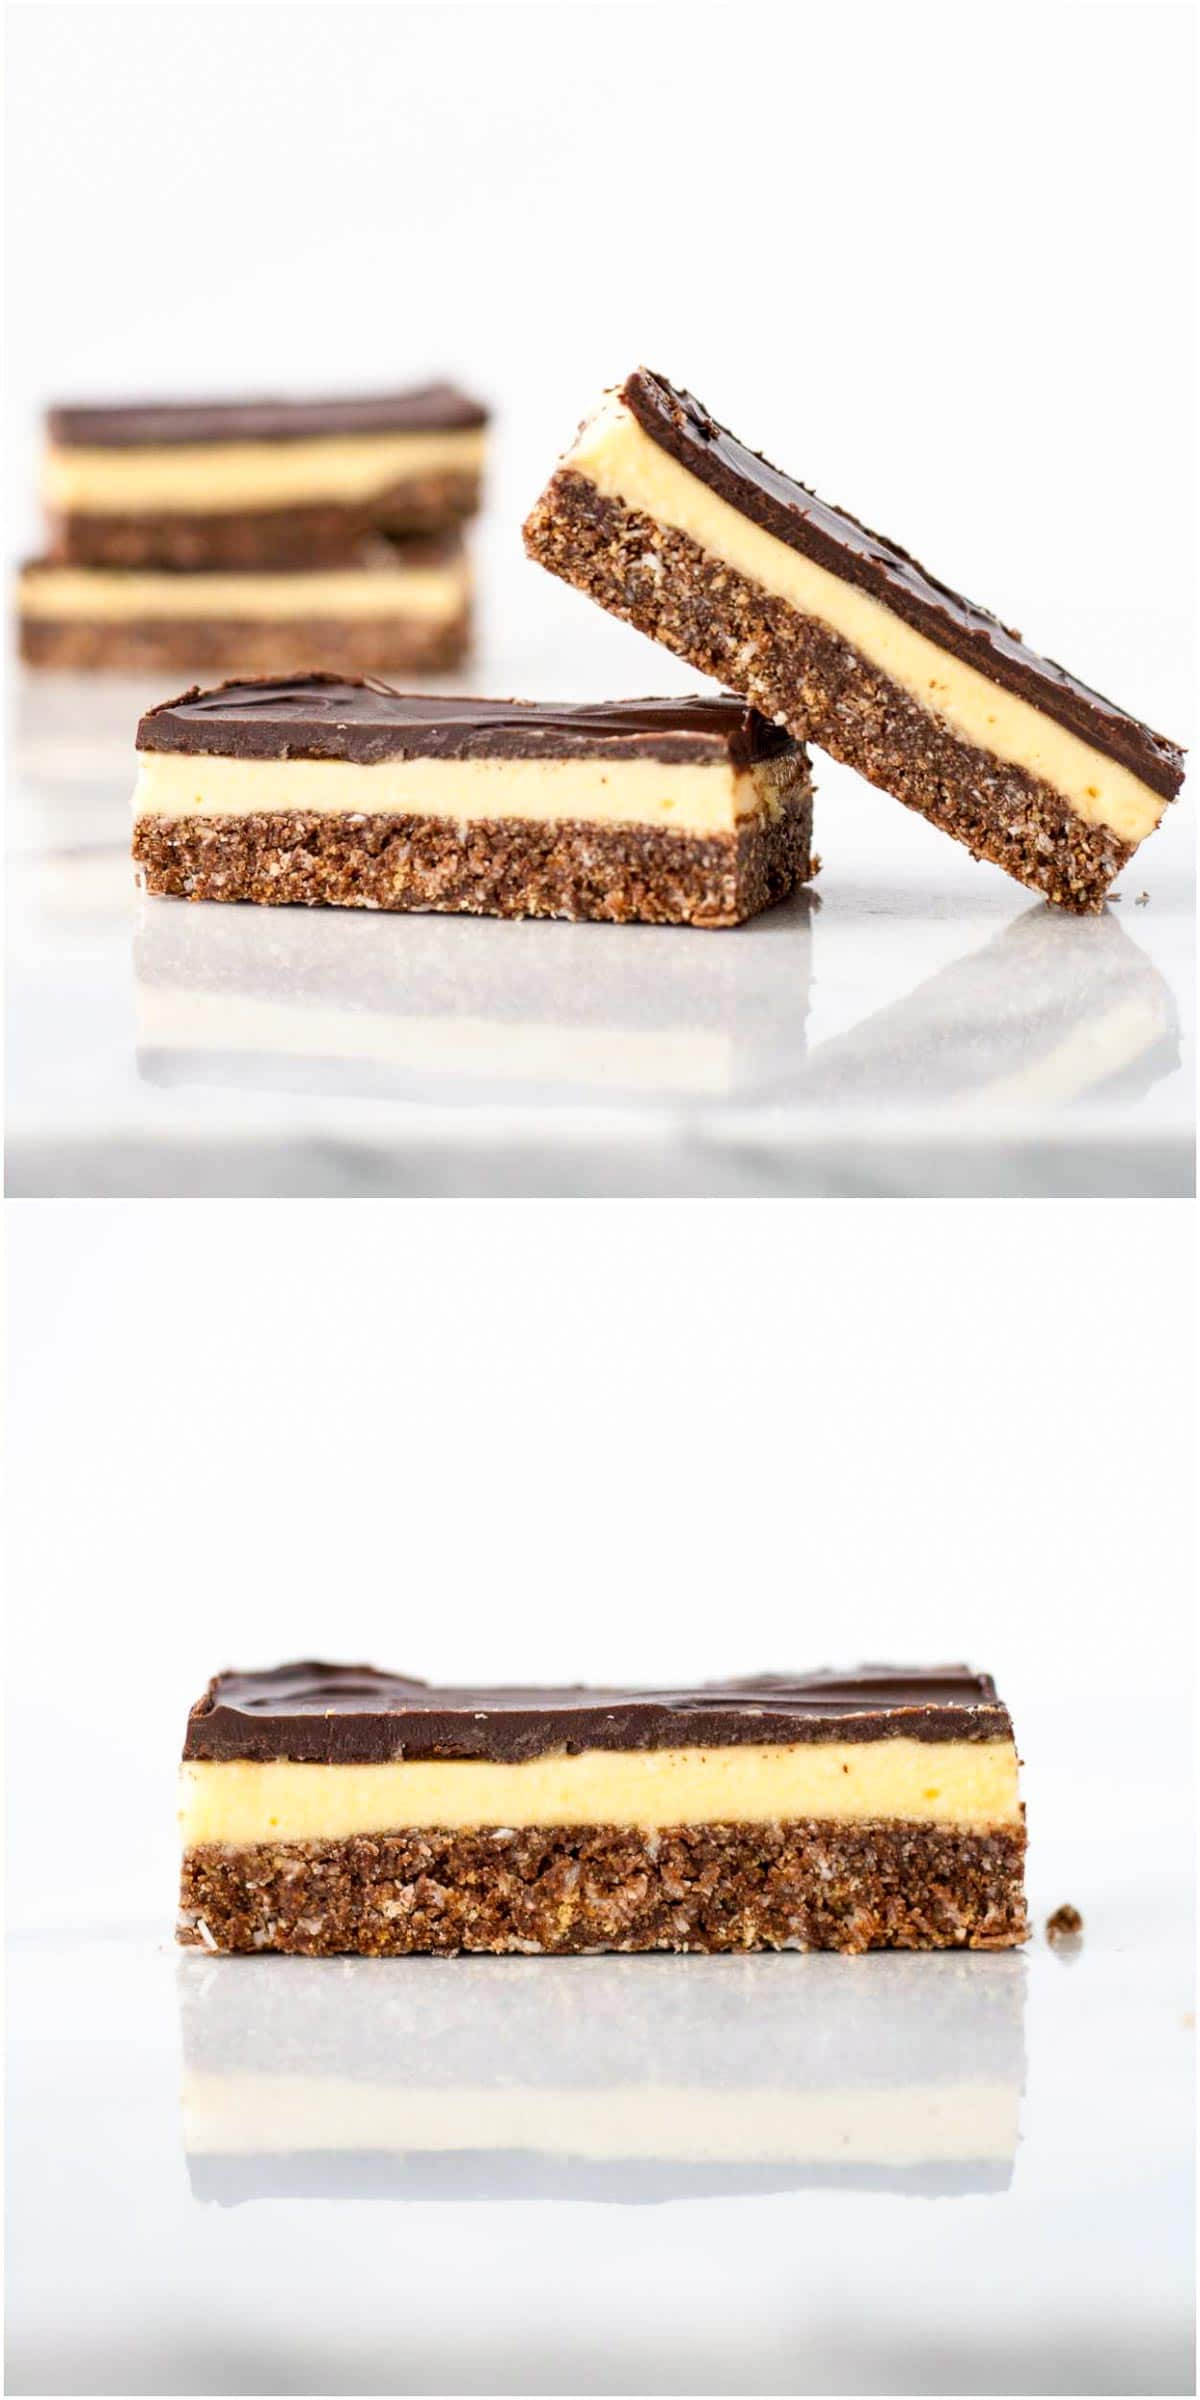 Close up of the bars showing all three layers.